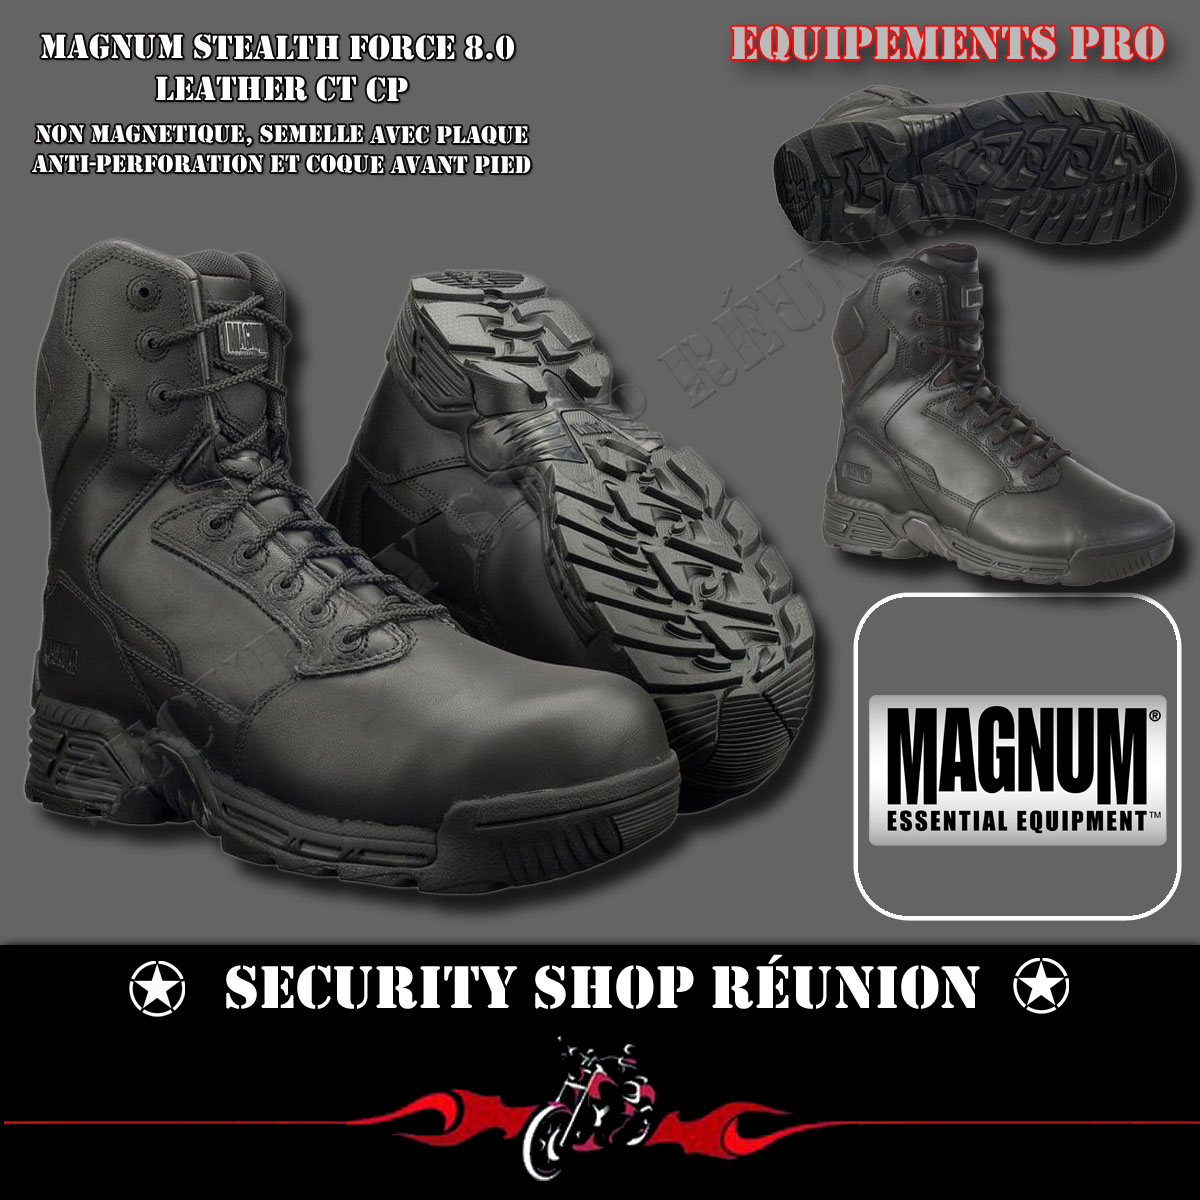 chaussures magnum sable,MAGNUM STEALTH FORCE 8.0 LEATHER CT CP